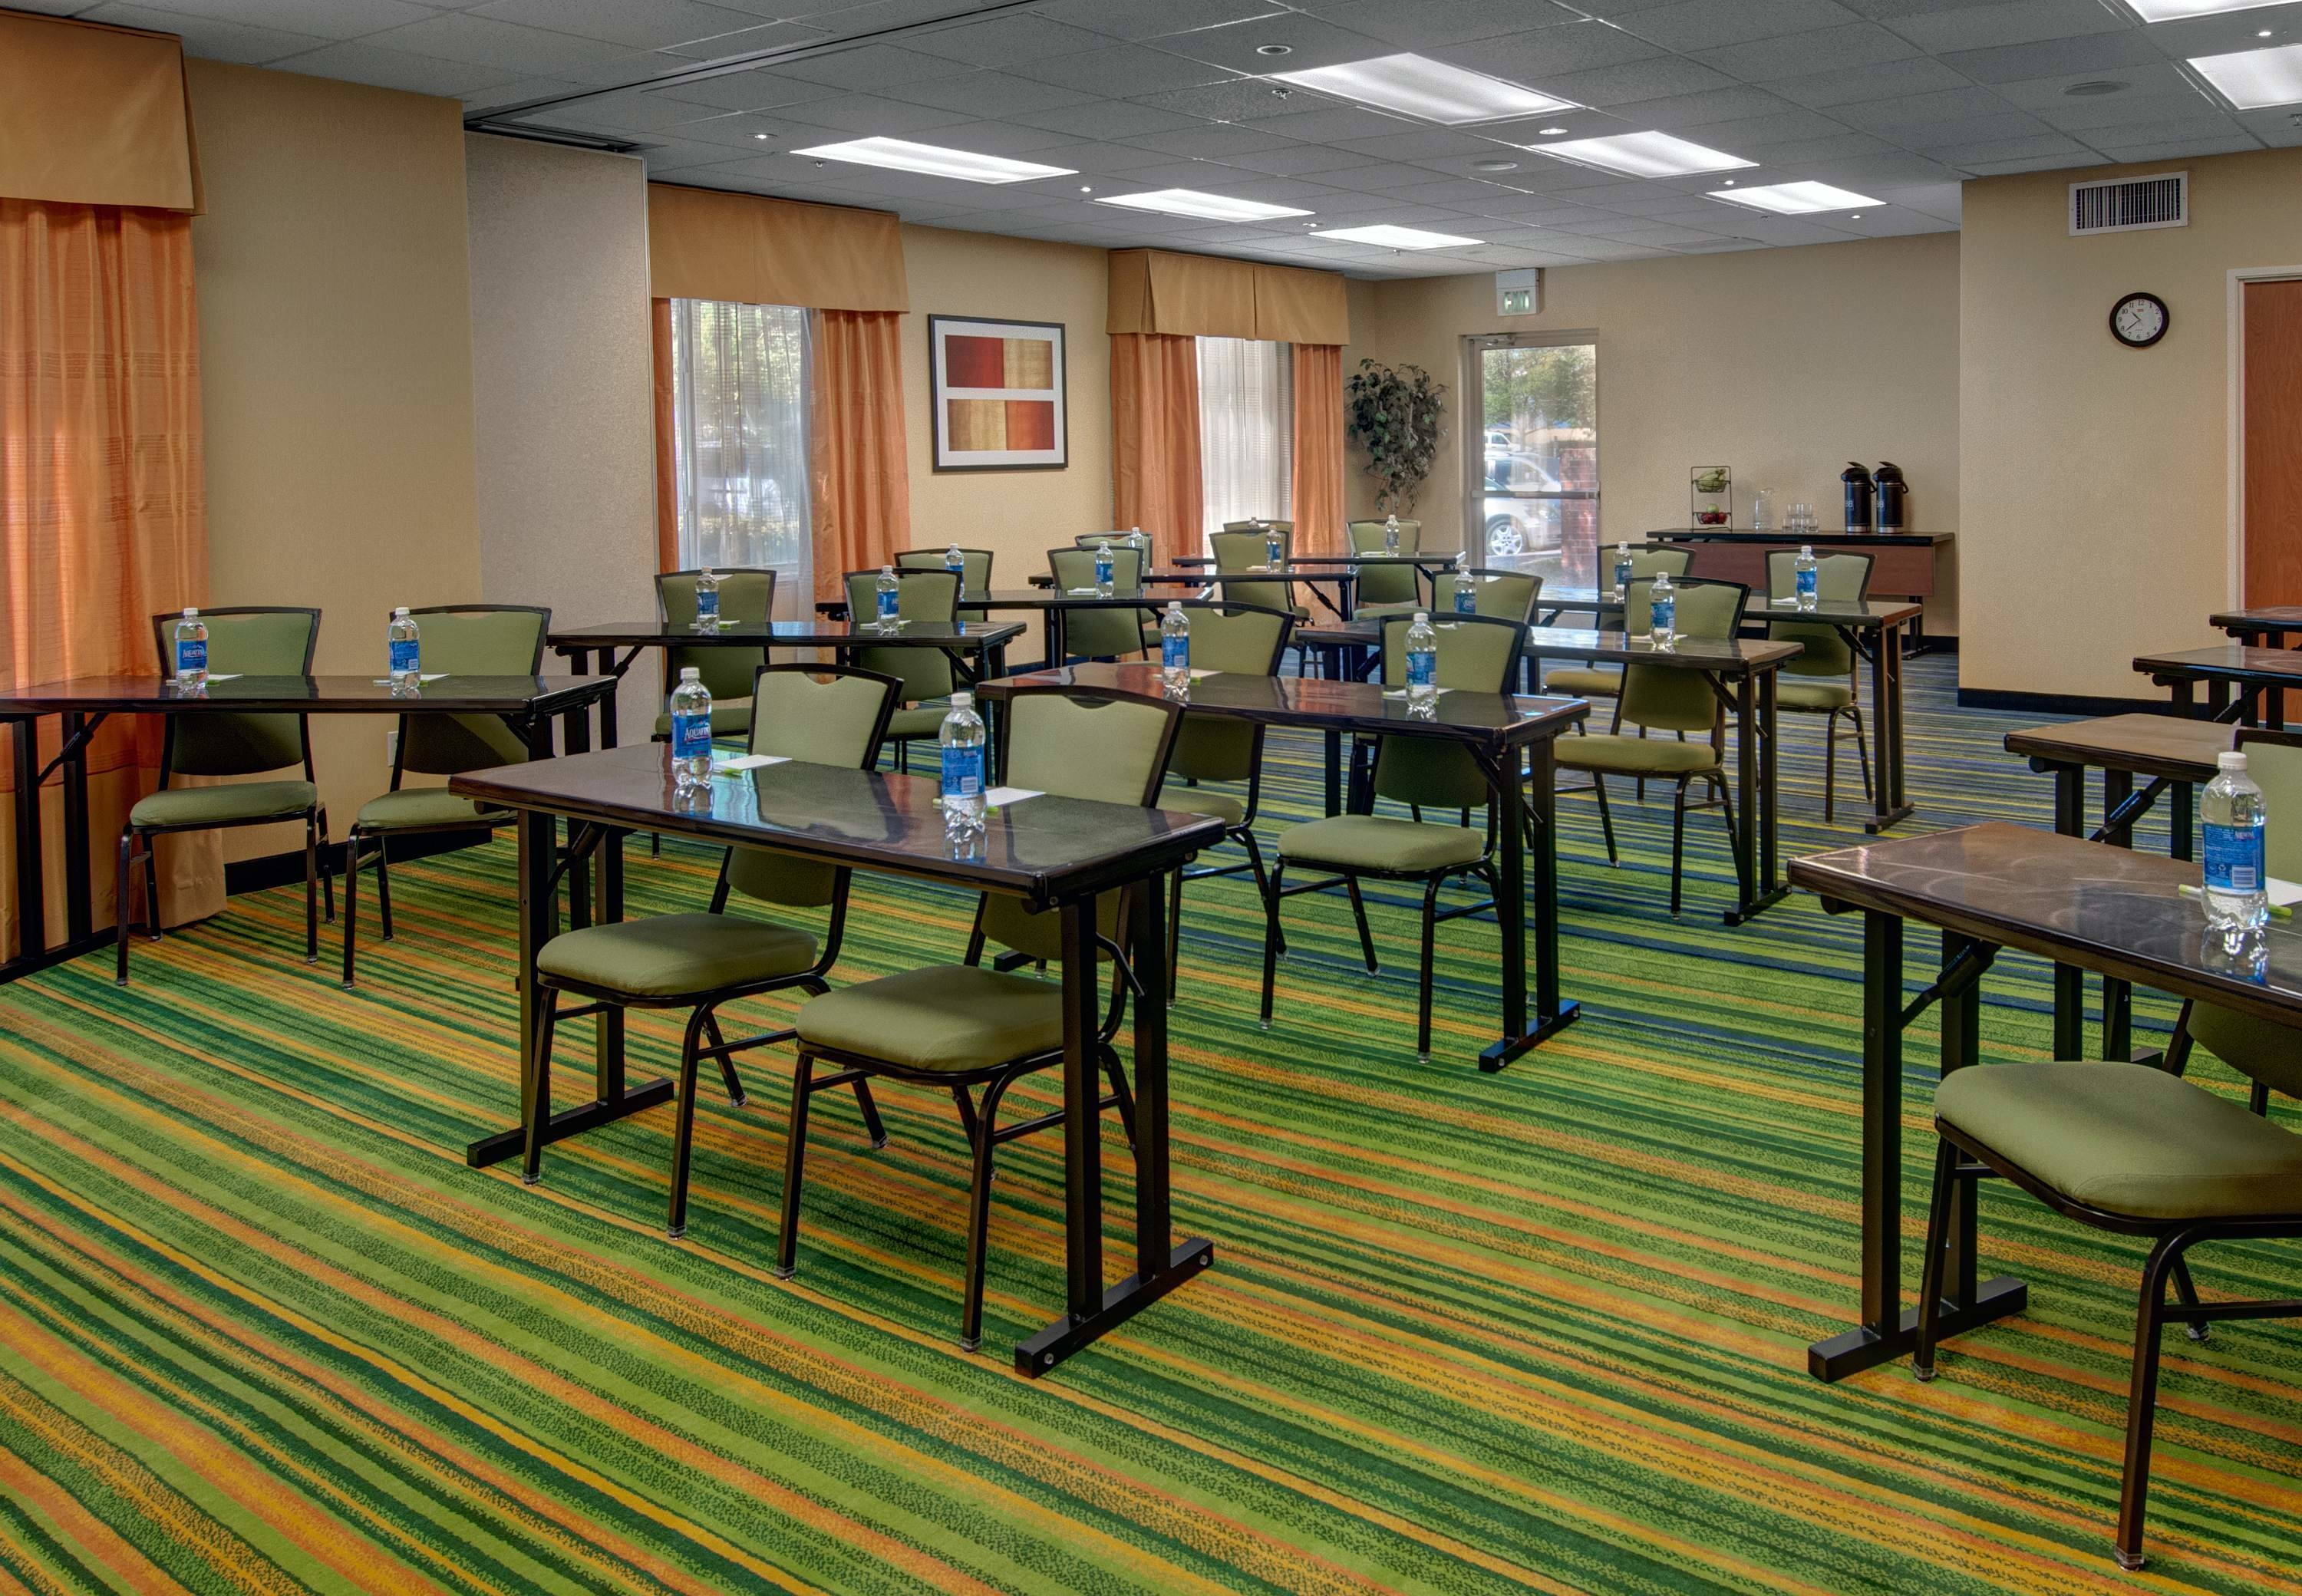 Meeting Rooms For Rent In Denver Co